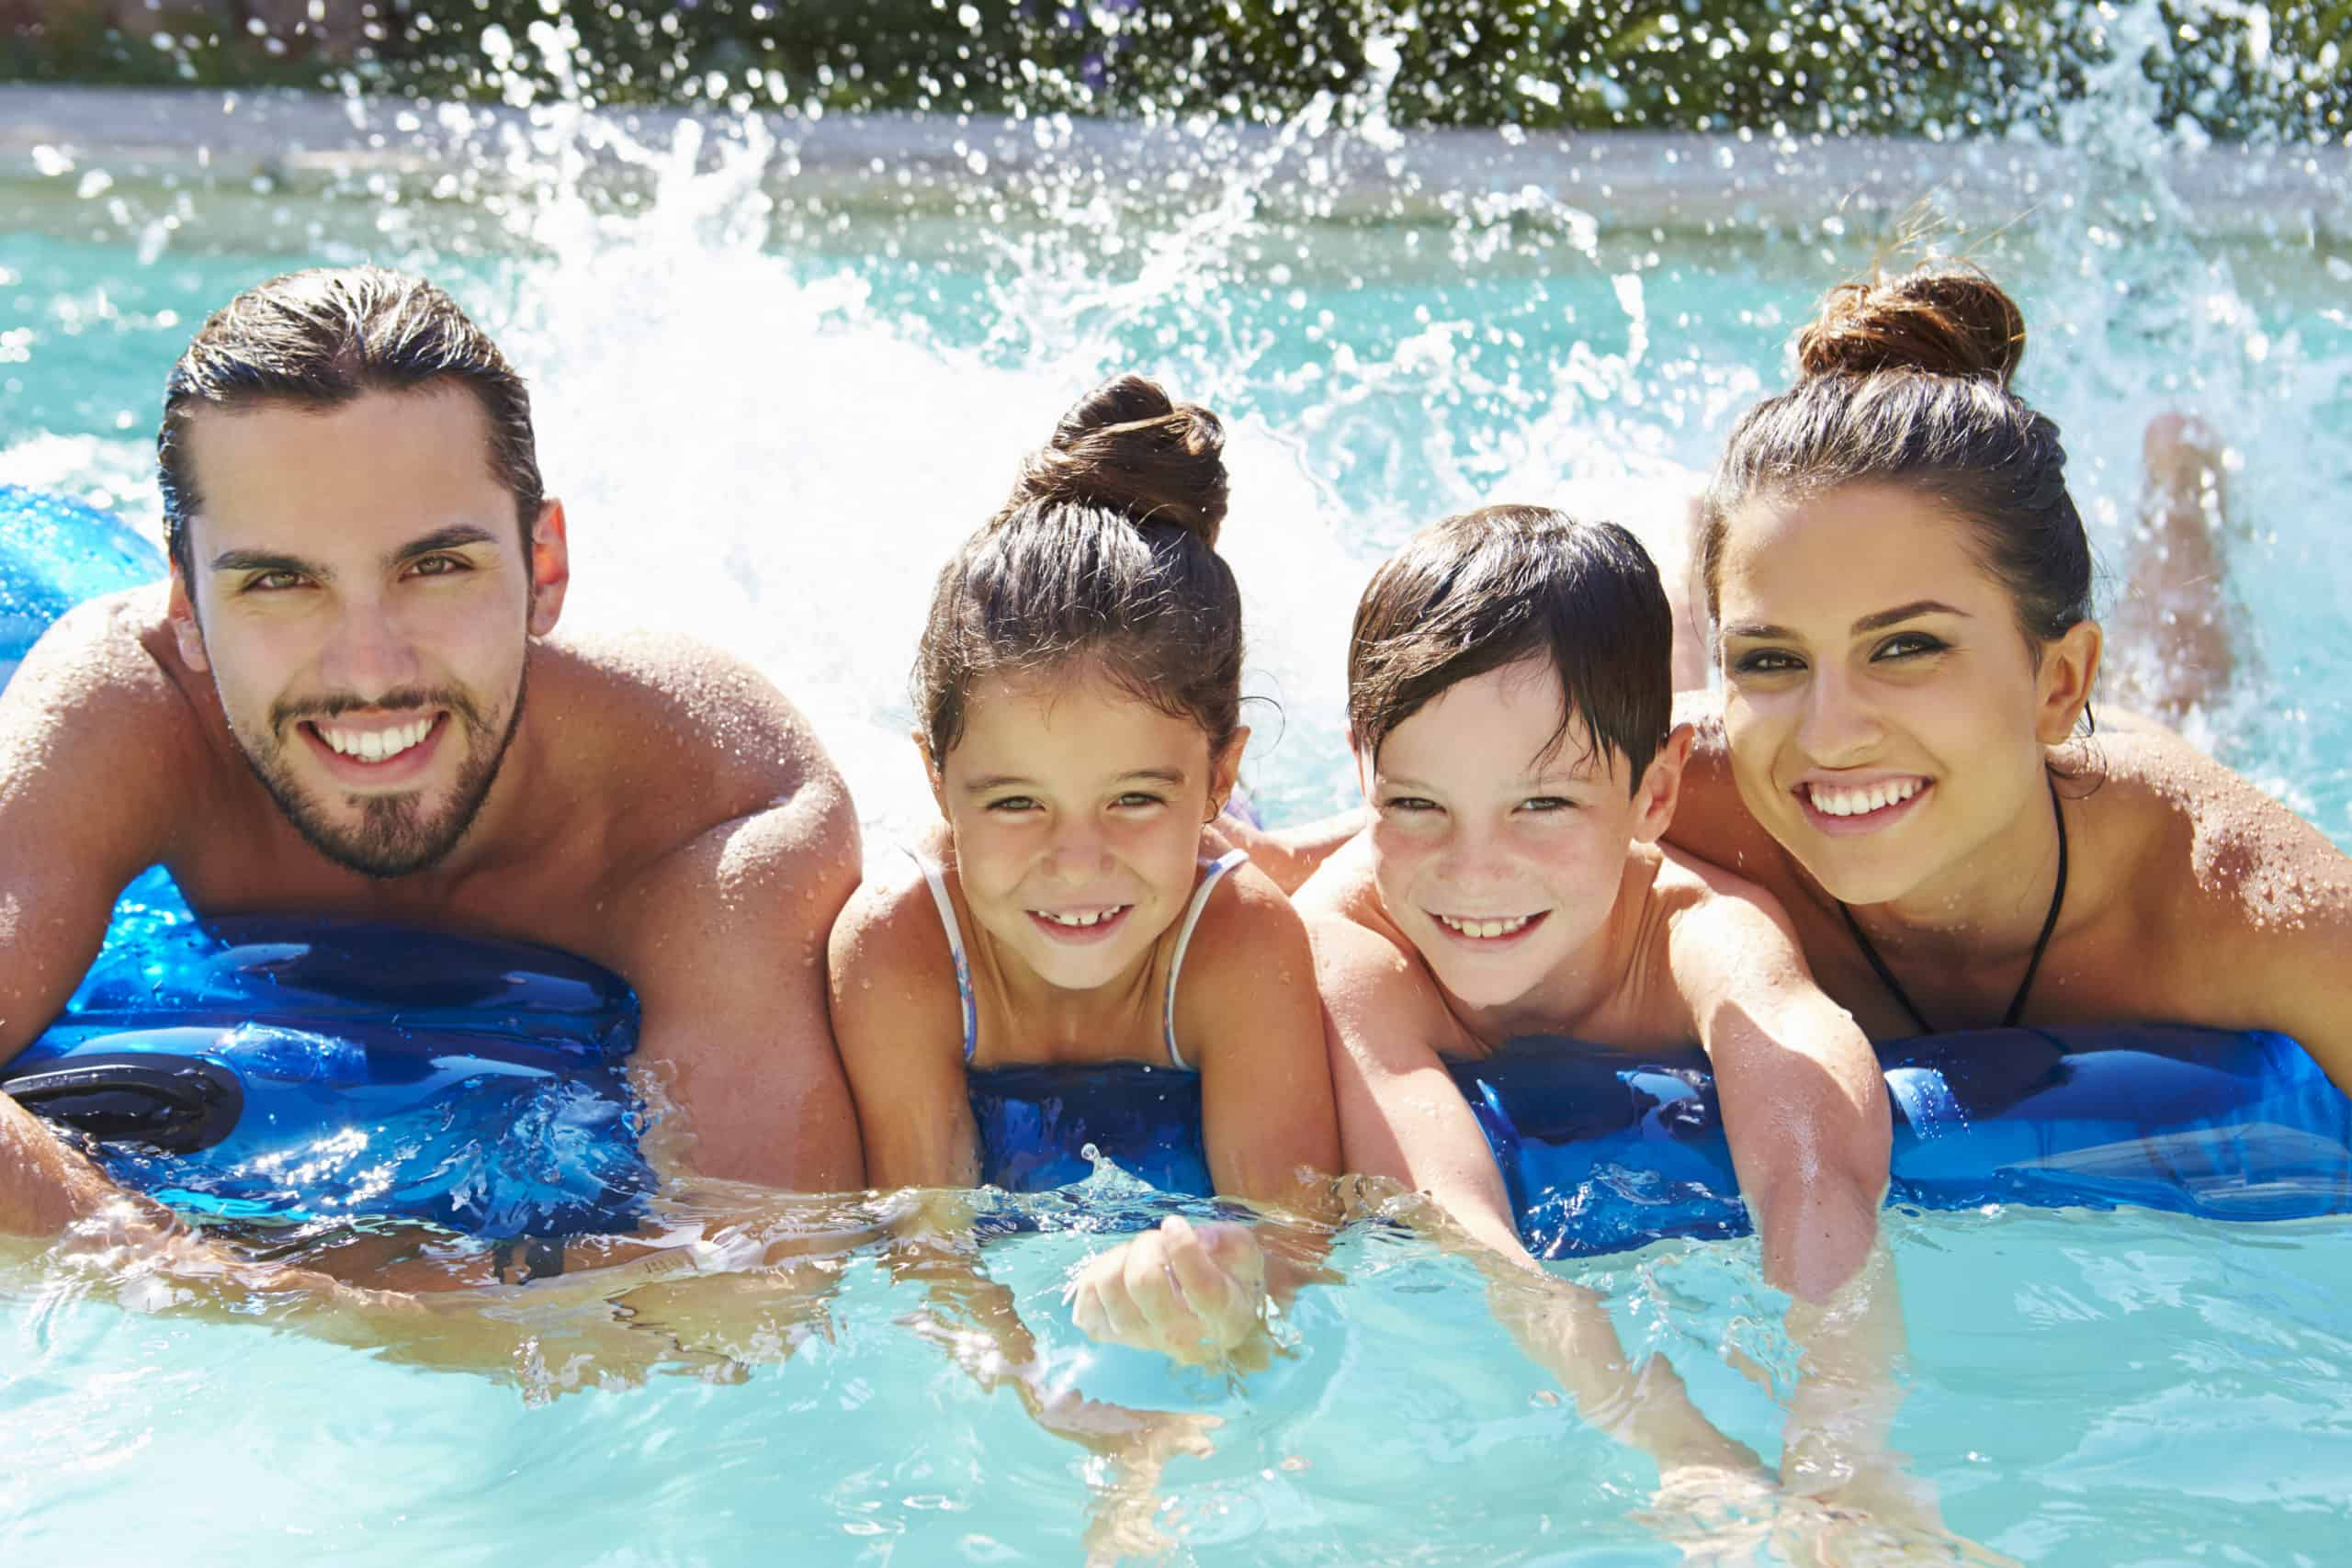 Portrait Of Family In a Swimming Pool